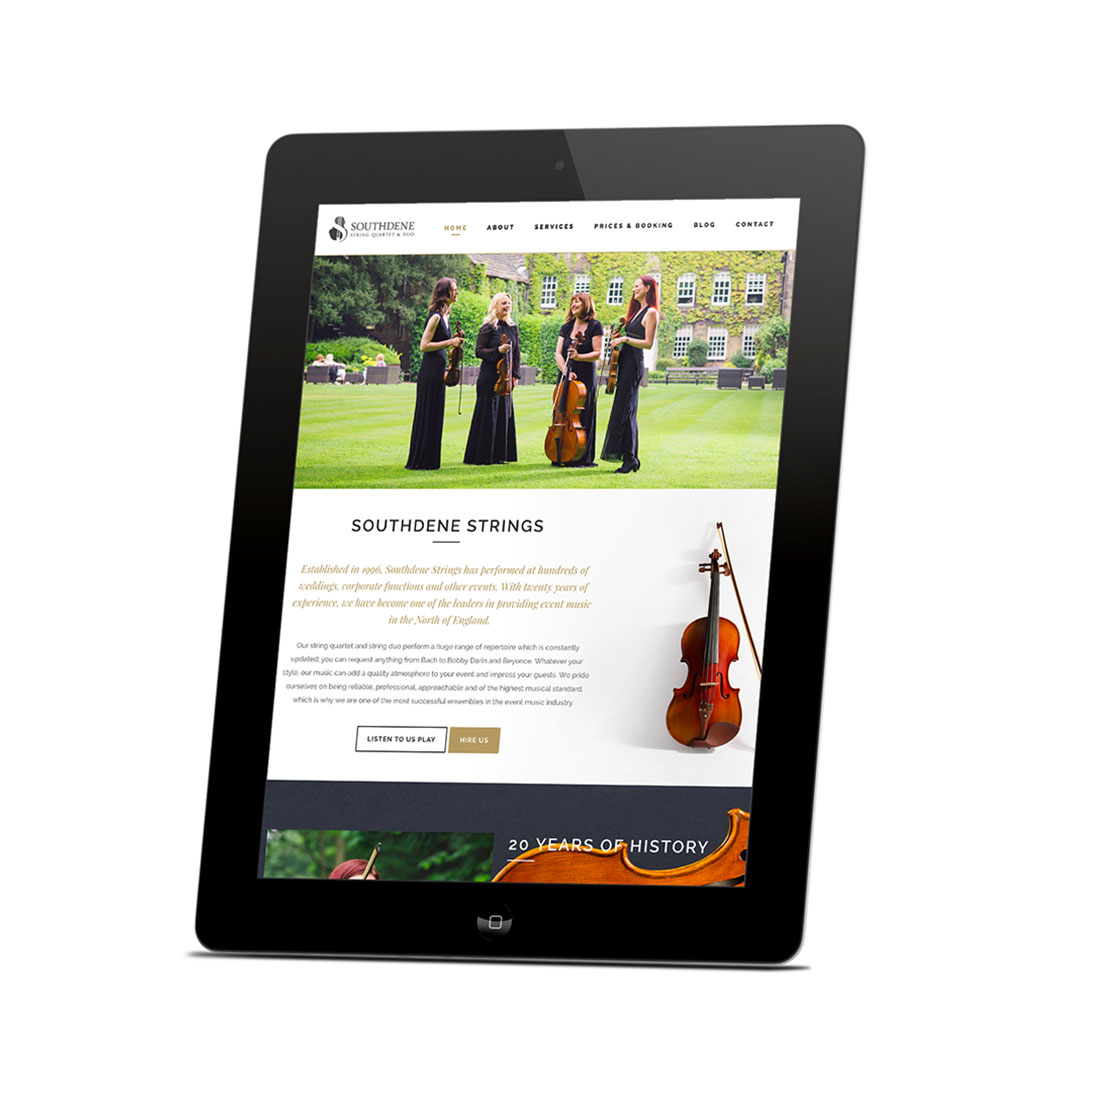 Southdene Strings website design Elbowroom Graphics